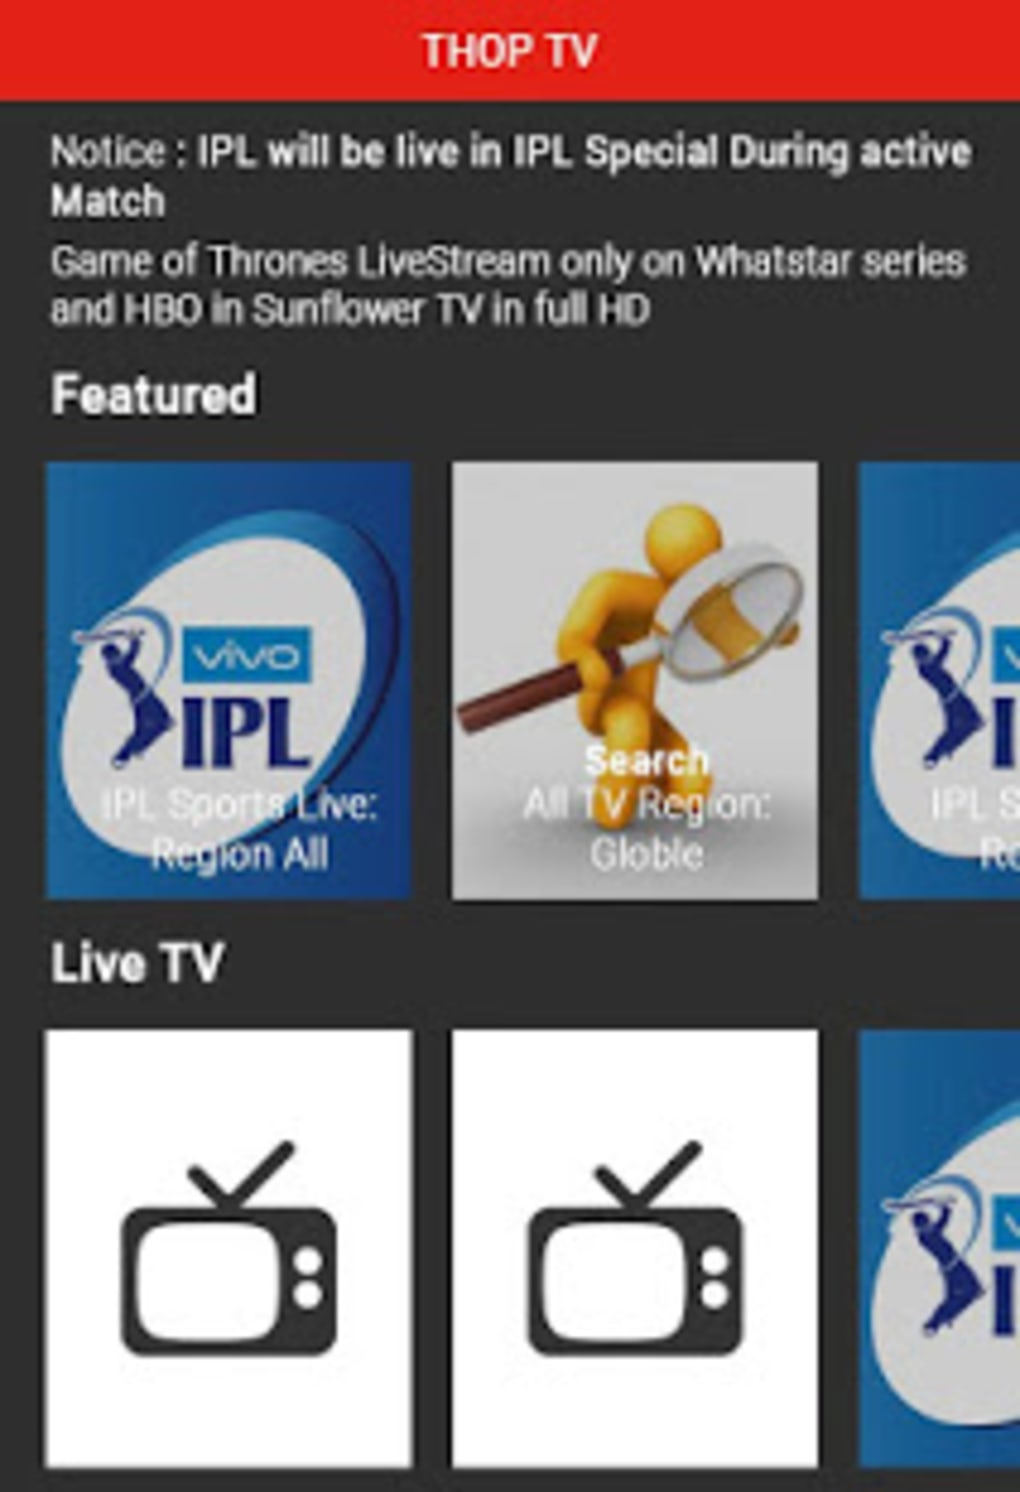 THOP TV - Free HD Live TV Guide for Android - Download